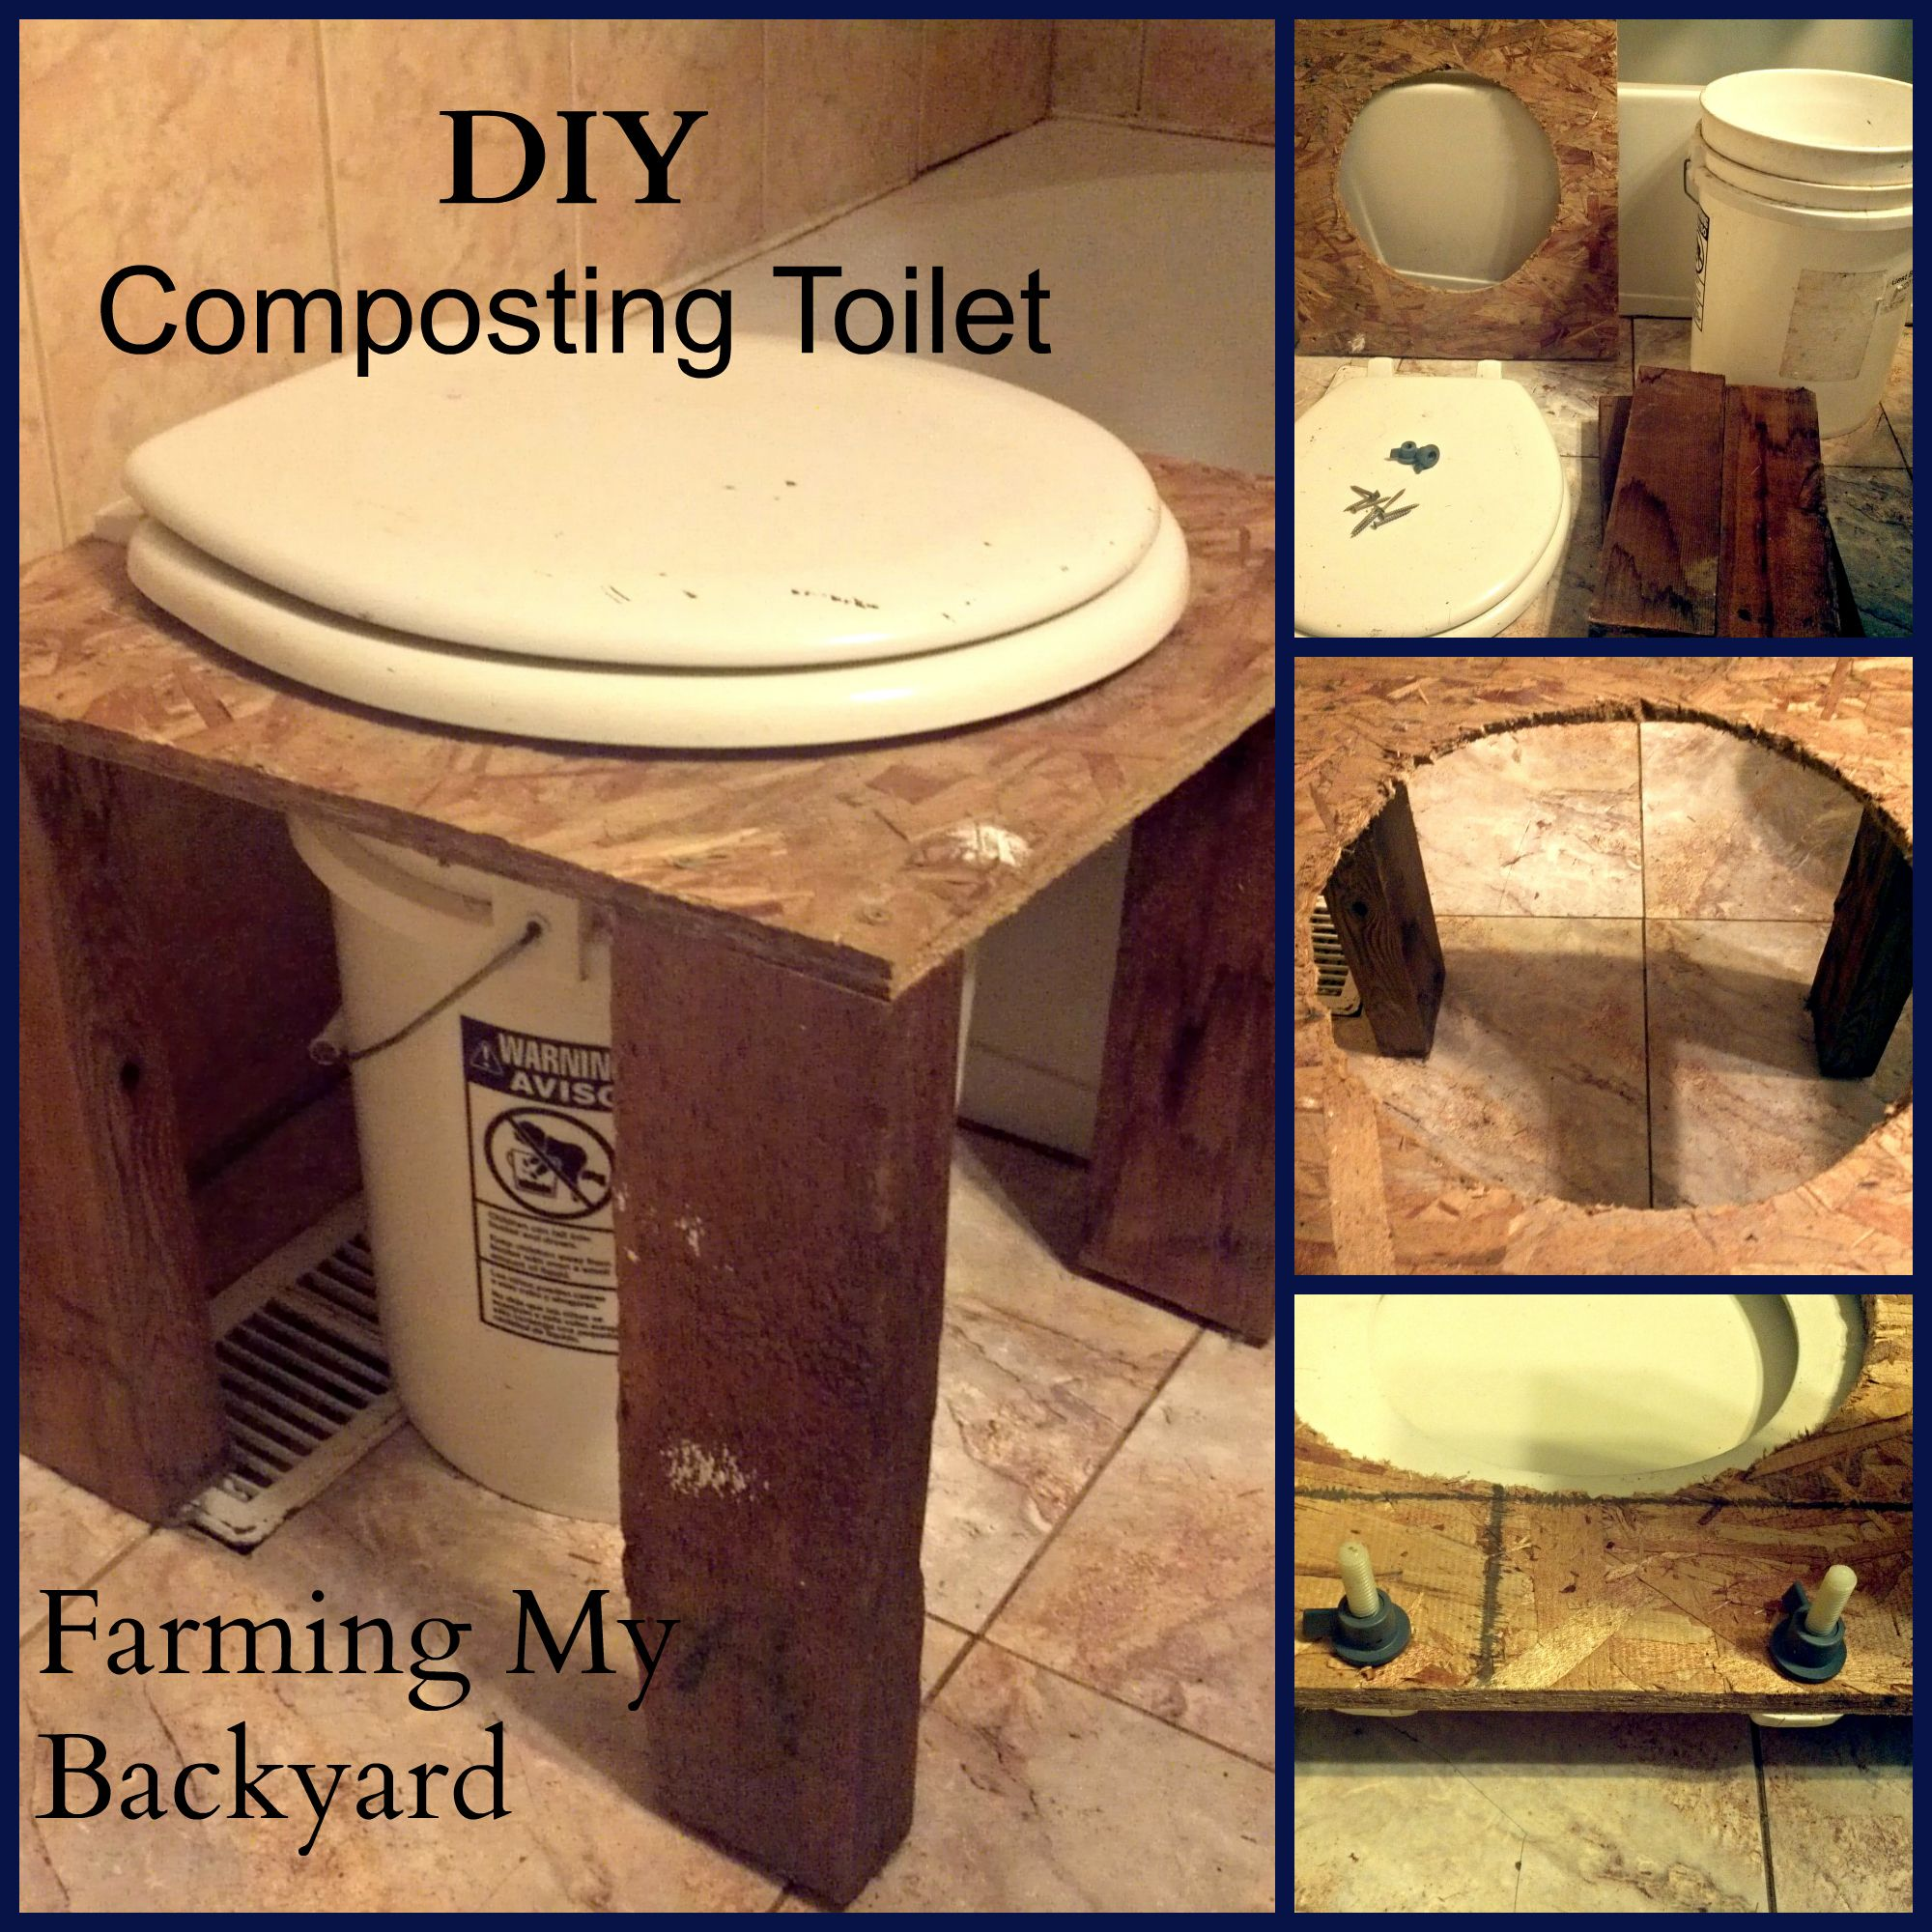 How To Build An Outdoor Bathroom: How To Make Your Own DIY Composting Toilet